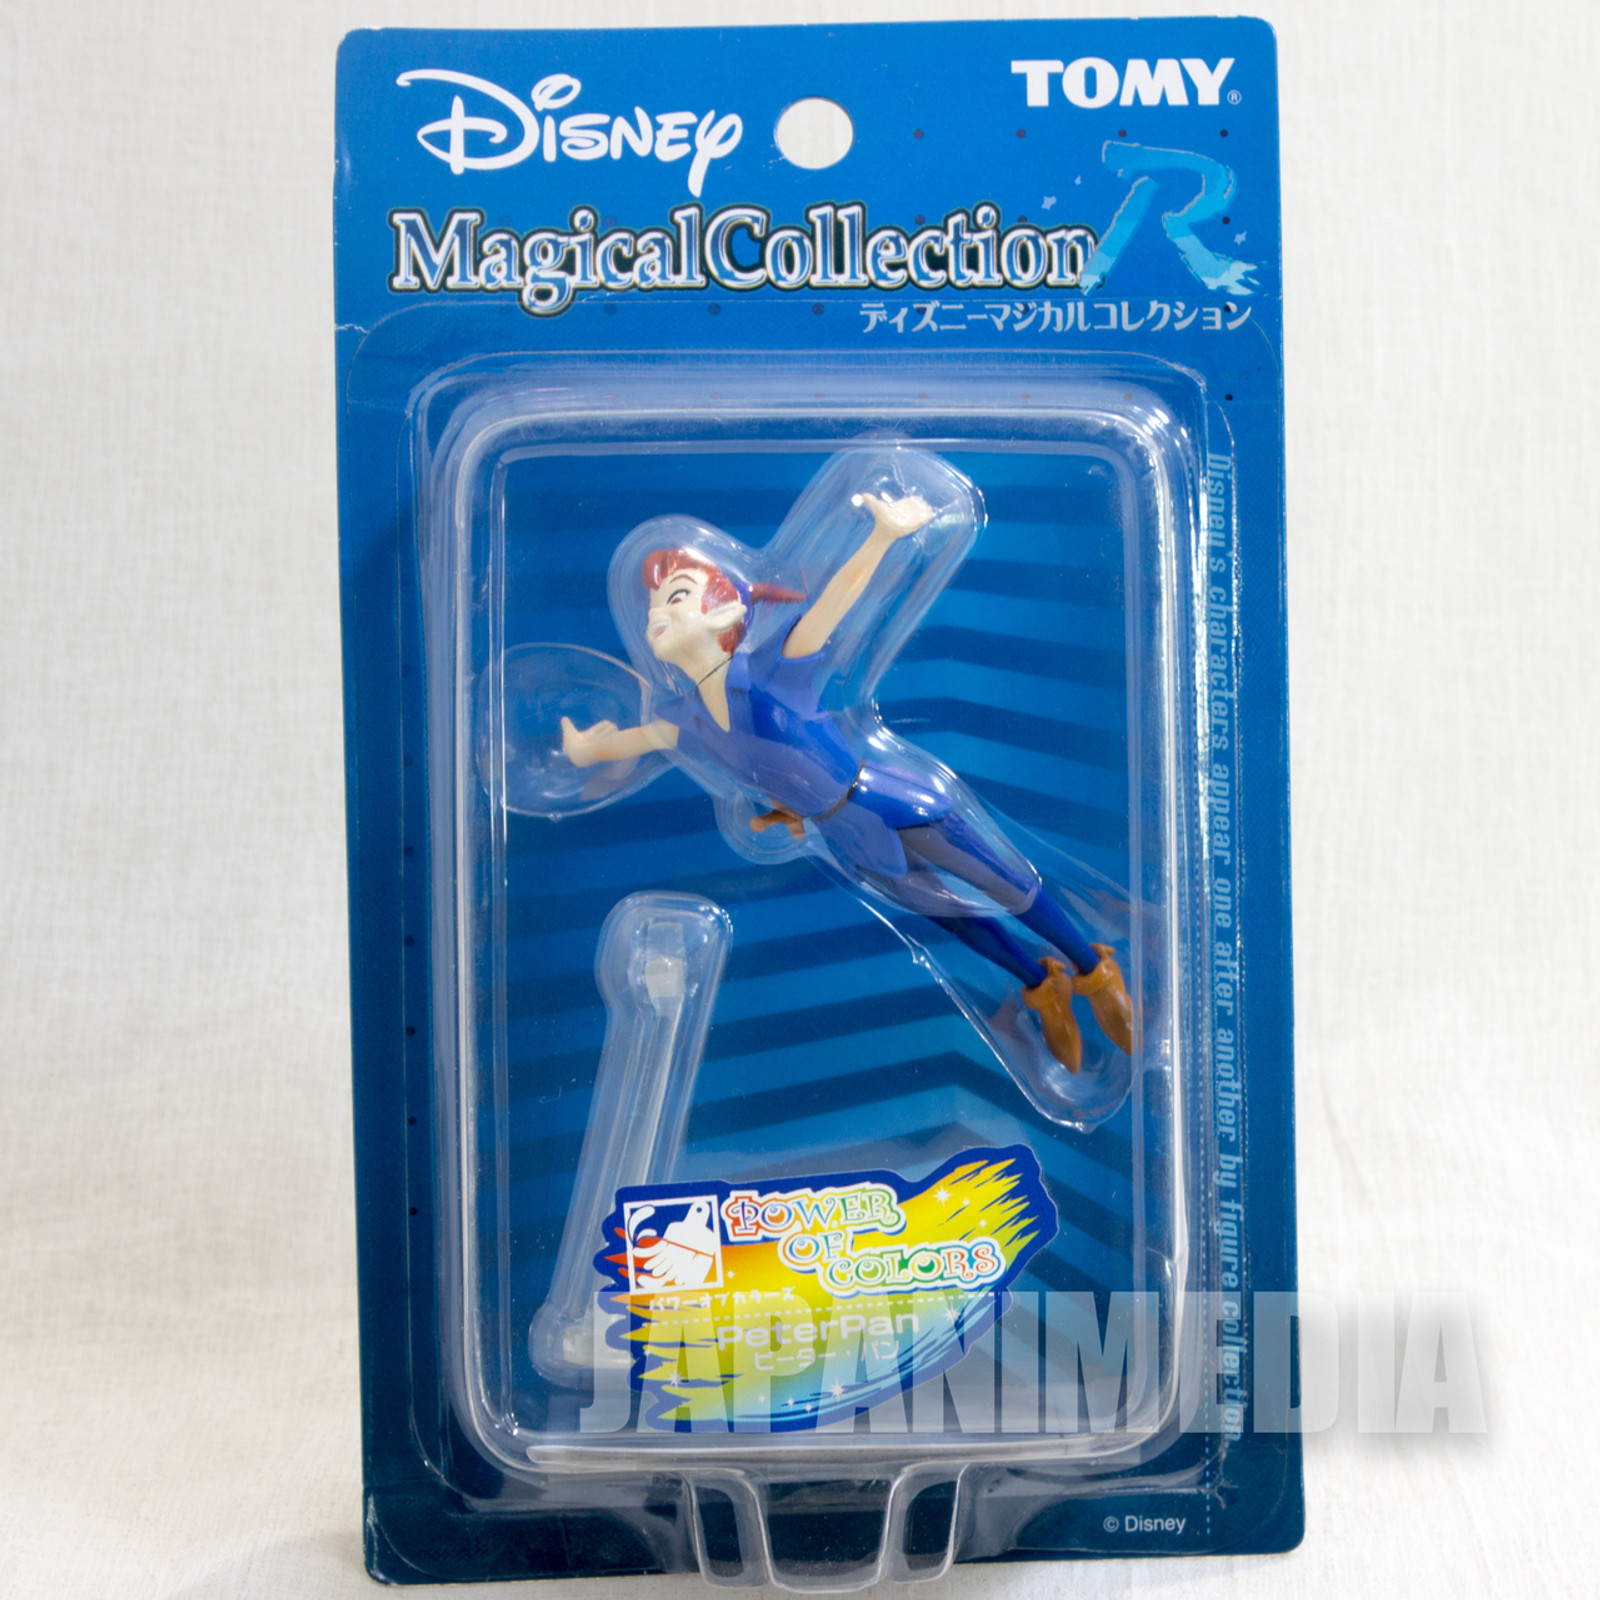 Peter Pan Disney Magical Collection R Figure (Power of Colors ver.) Tomy